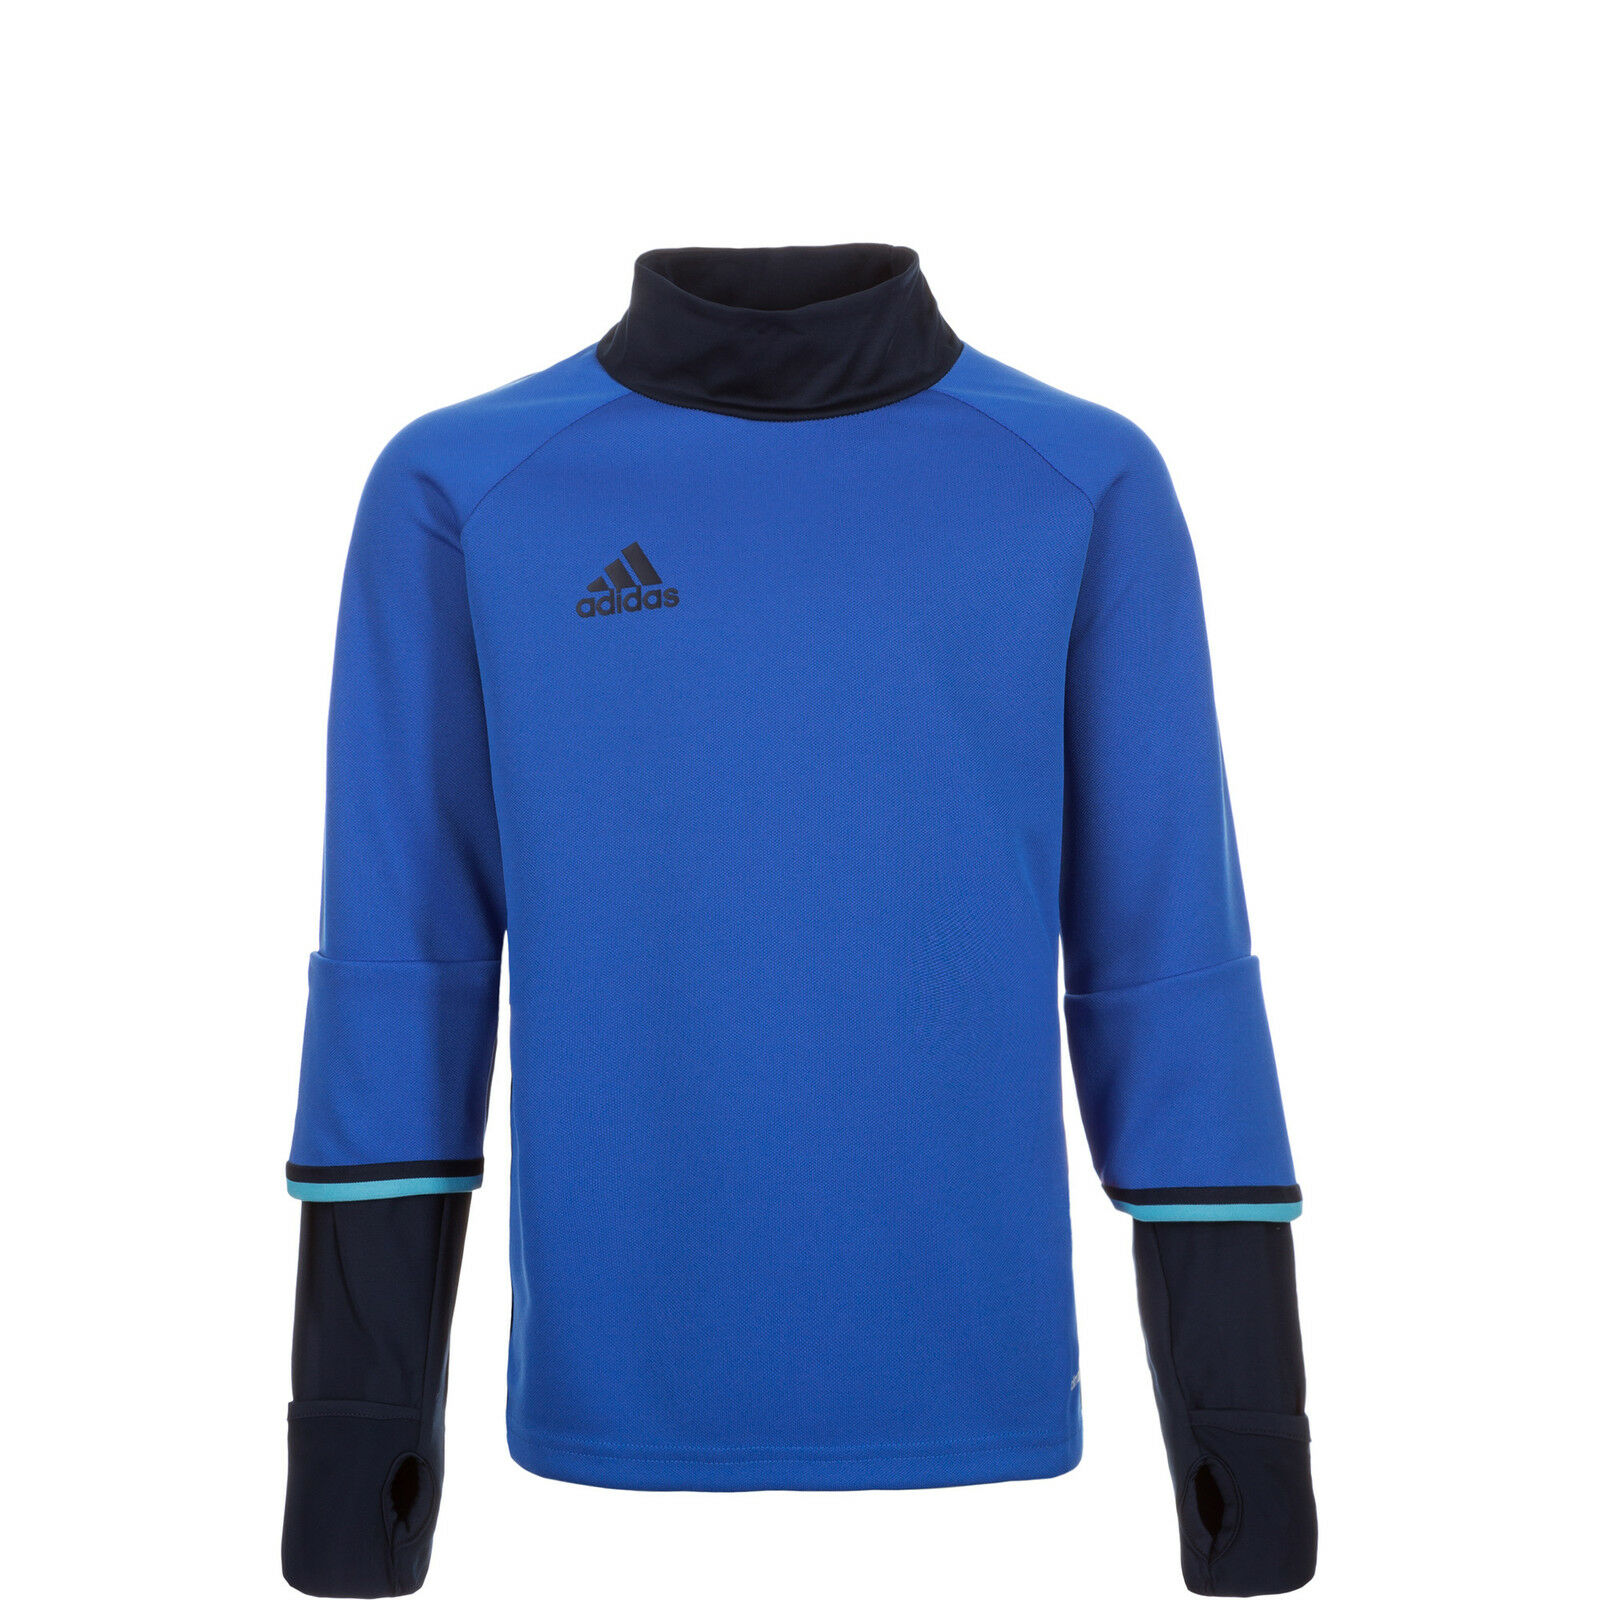 Adidas Performance Condivo 16 Trainingssweat Kinder blau   dunkelblau NEU  | Charmantes Design